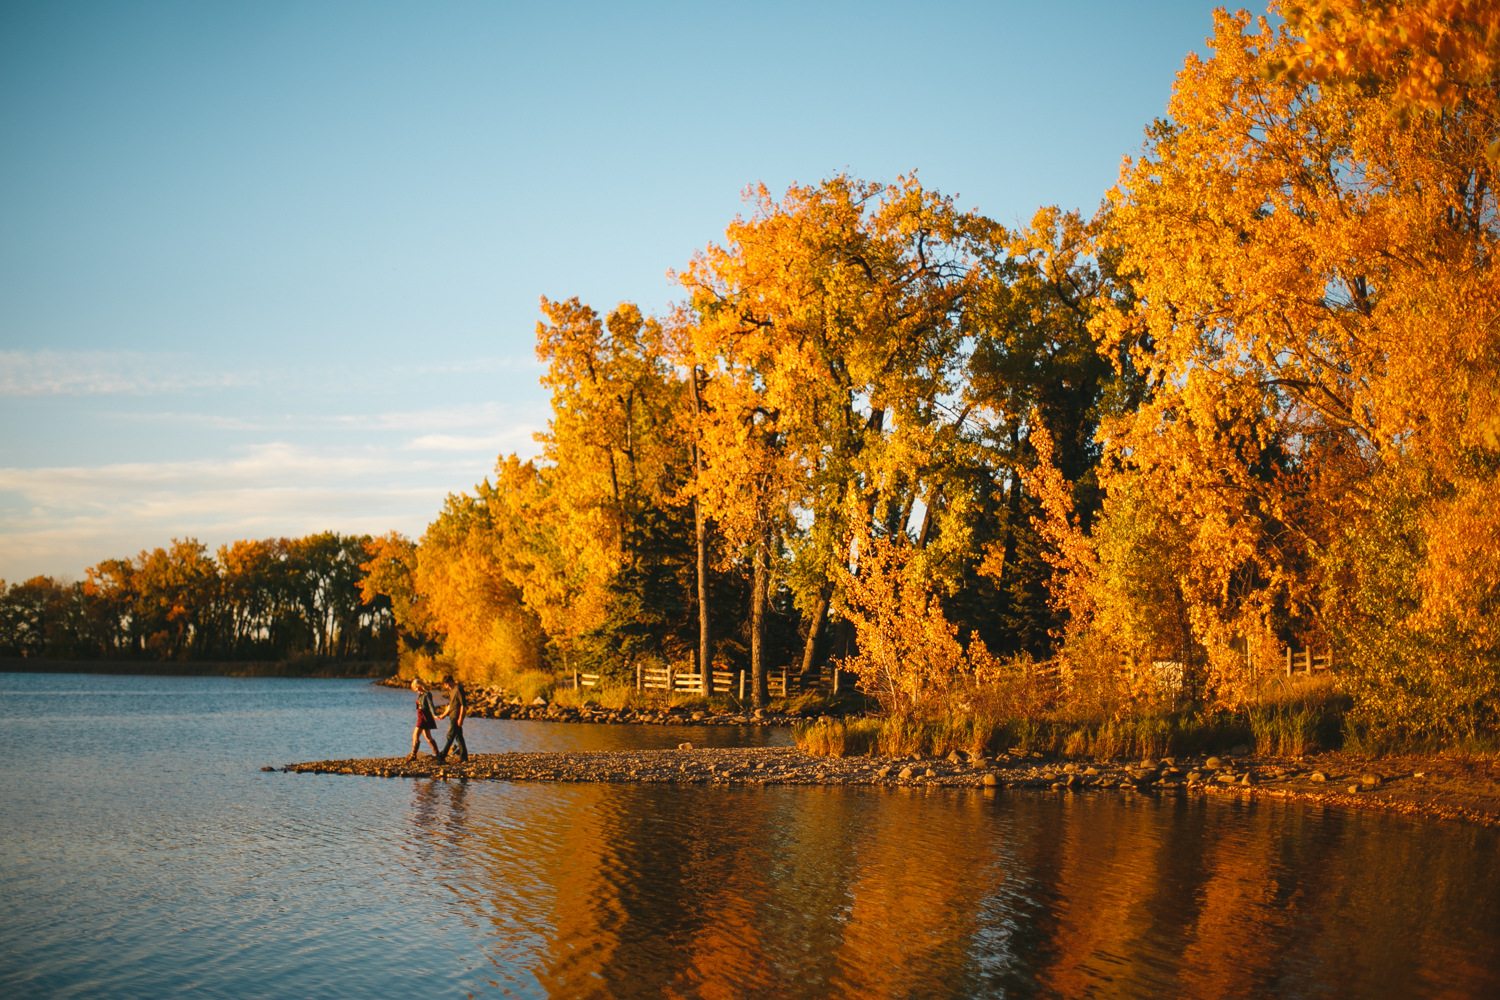 lethbridge-engagement-photography-love-and-be-loved-photography-steven-marlene-park-lake-engaged-picture-image-photo-26.jpg